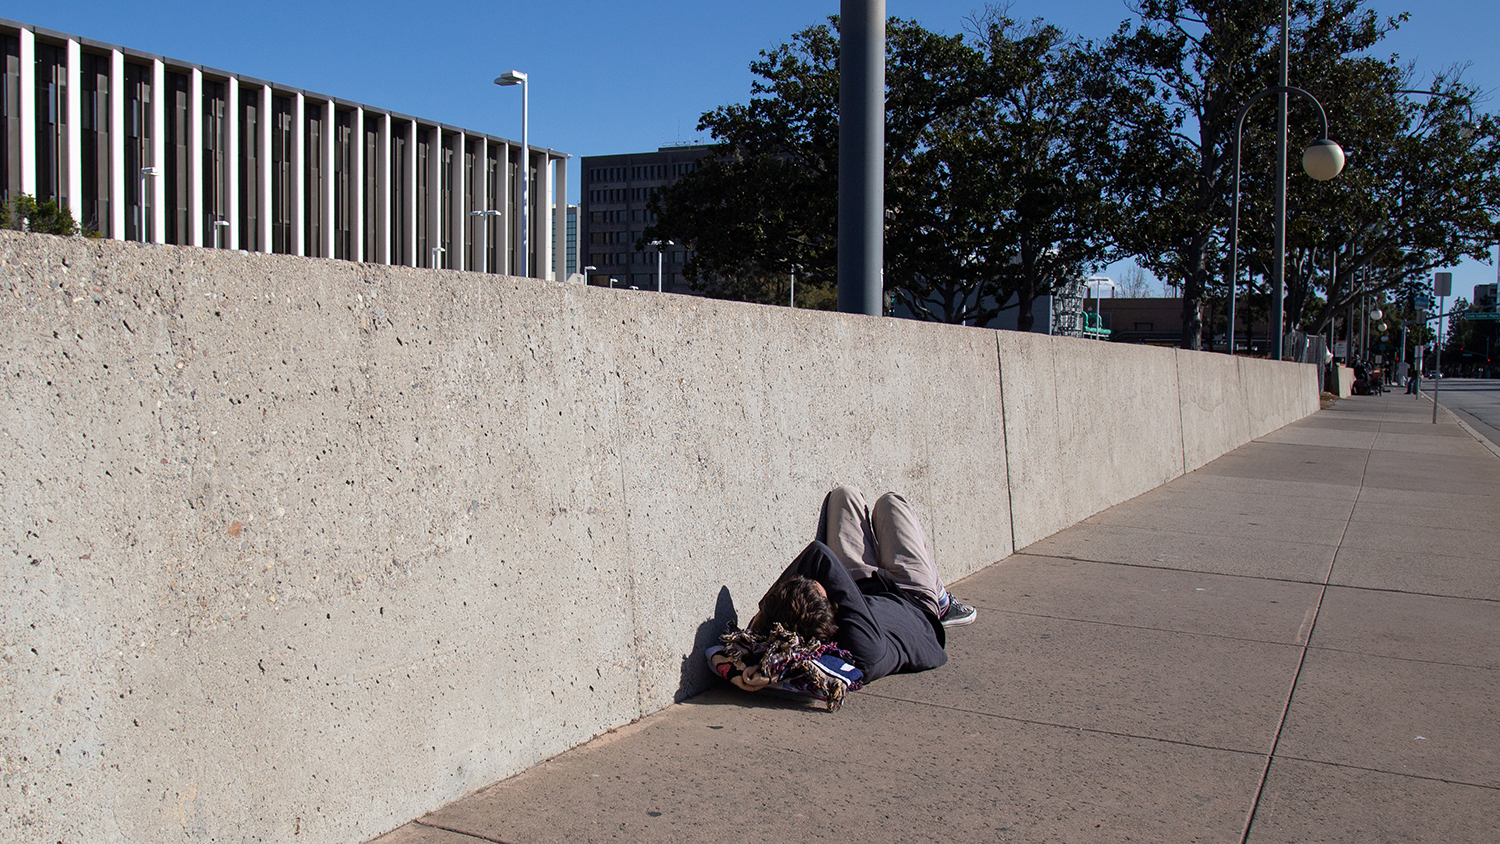 Officials Wonder if OC Will Be Ready to House 1,000 Homeless People When the Money Rolls In